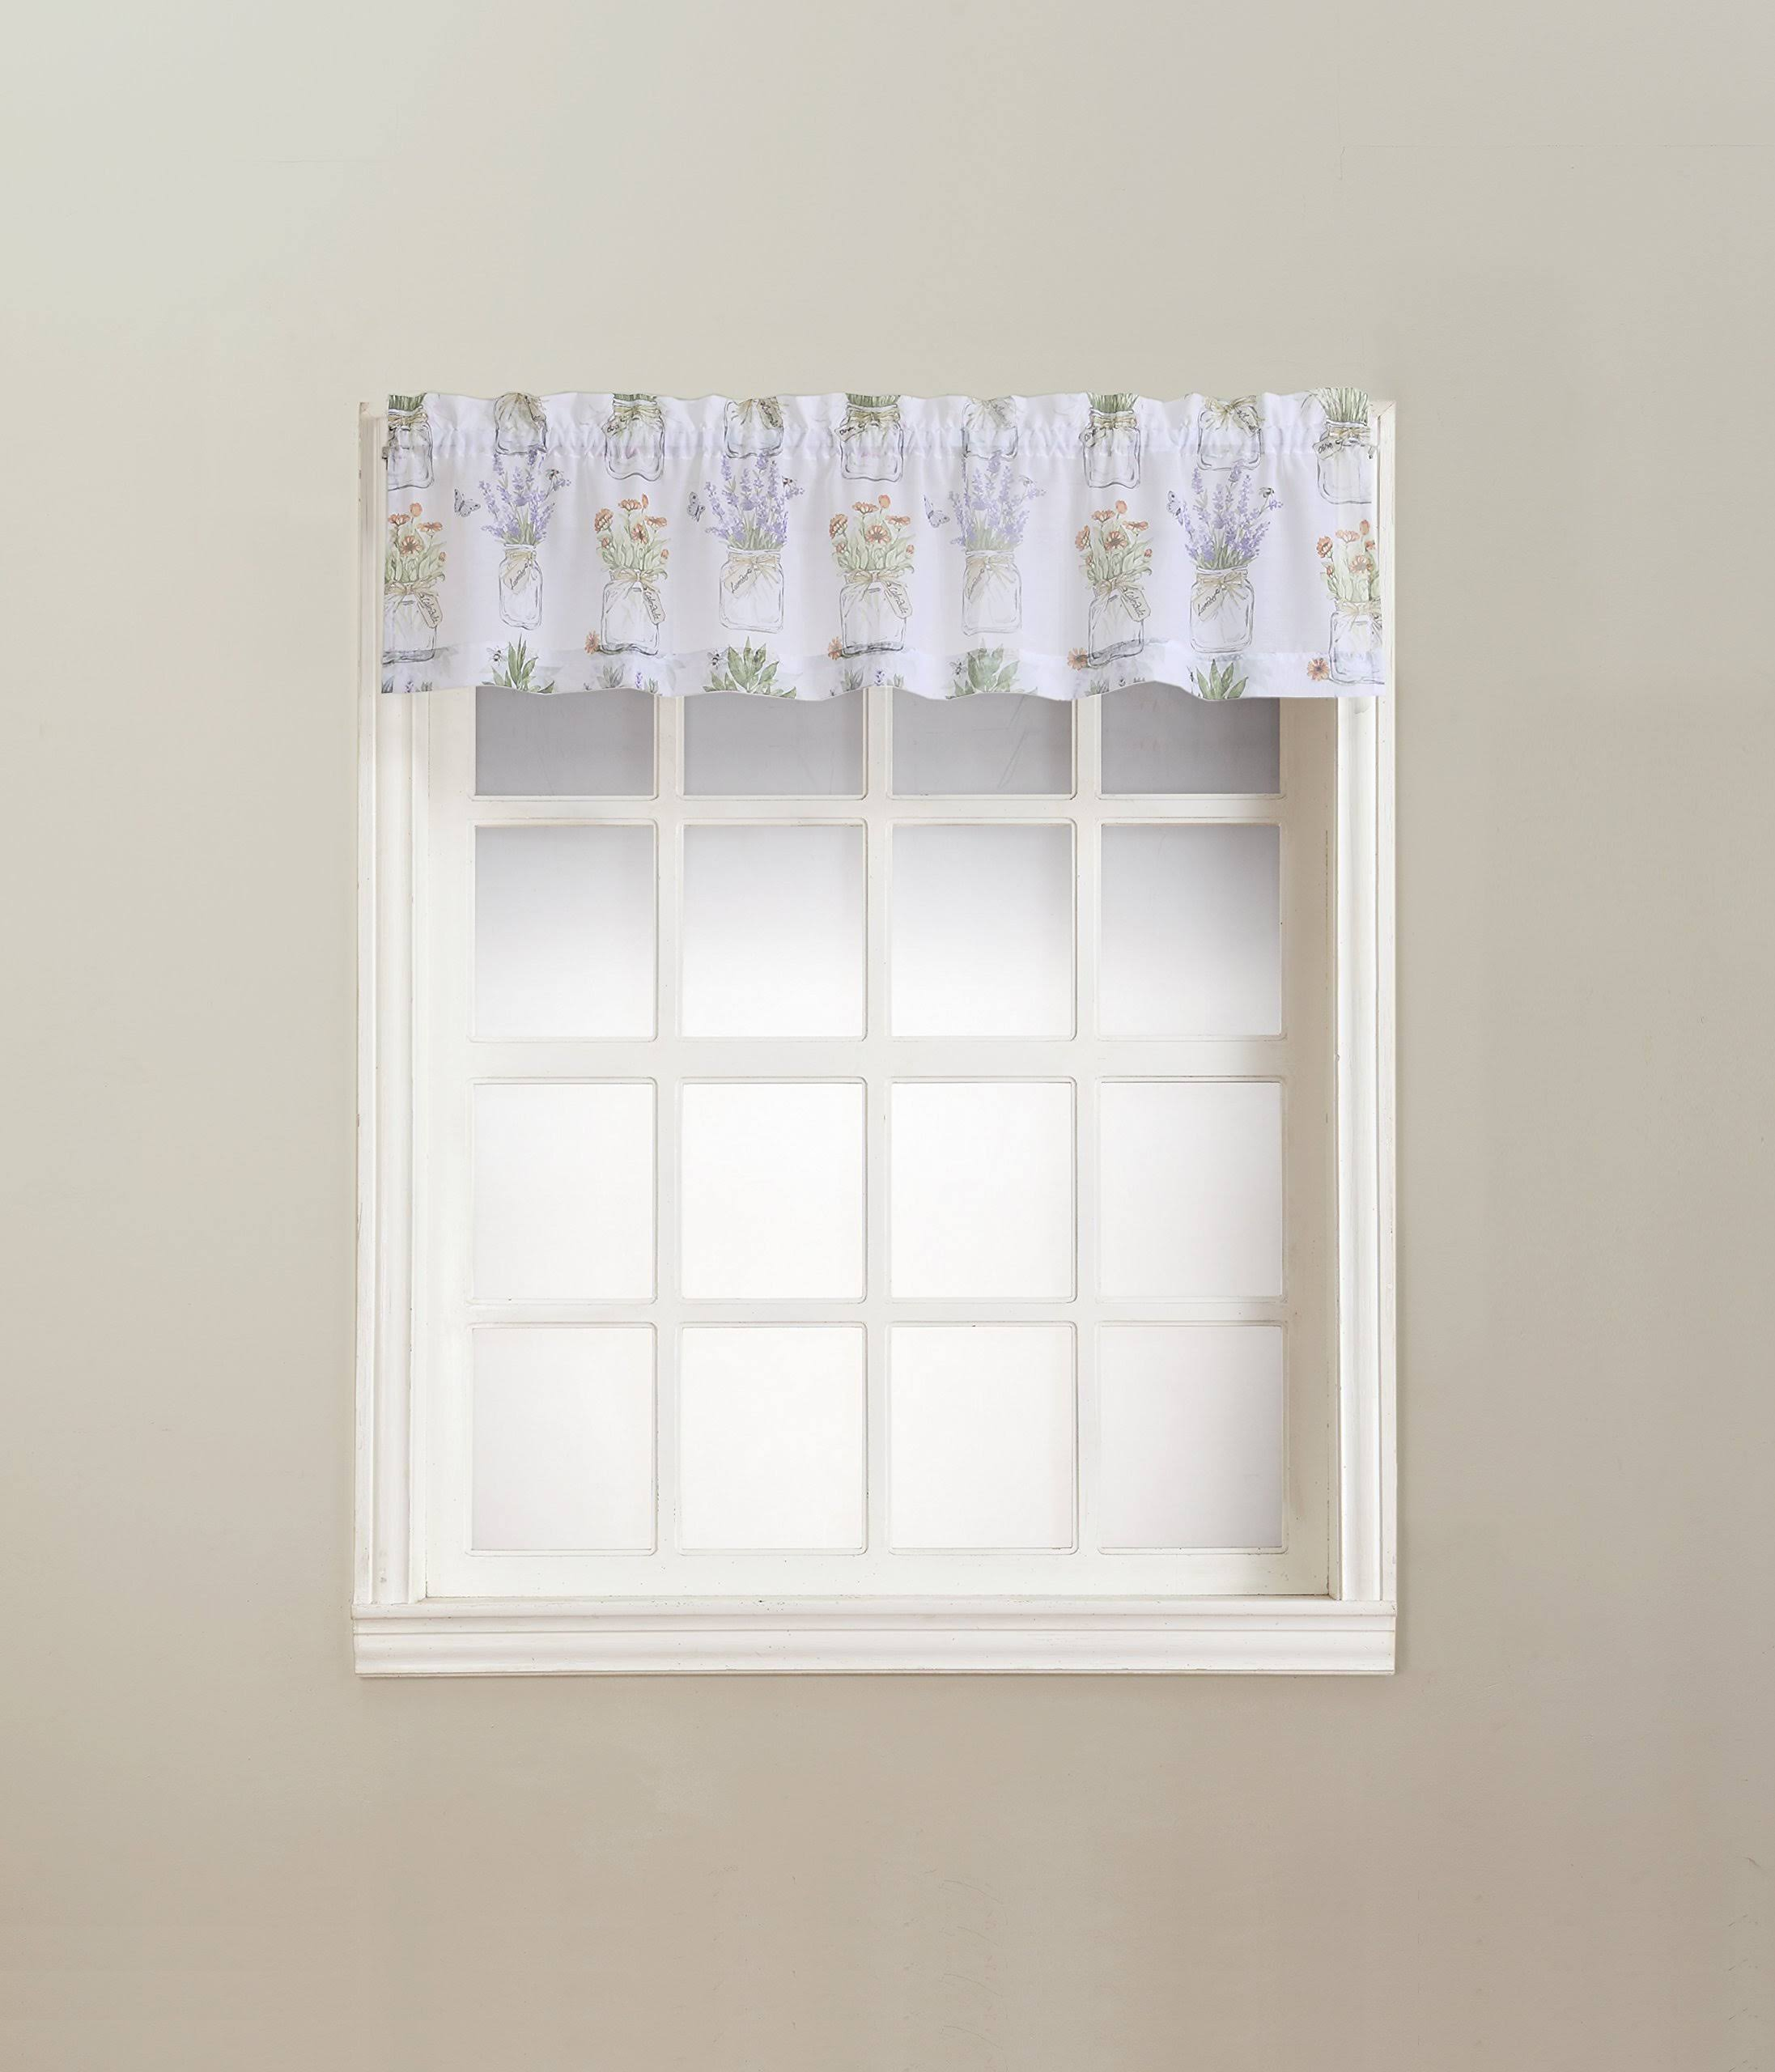 No. 918 Eves Garden Kitchen Curtain Valance, Size: 54x14, White